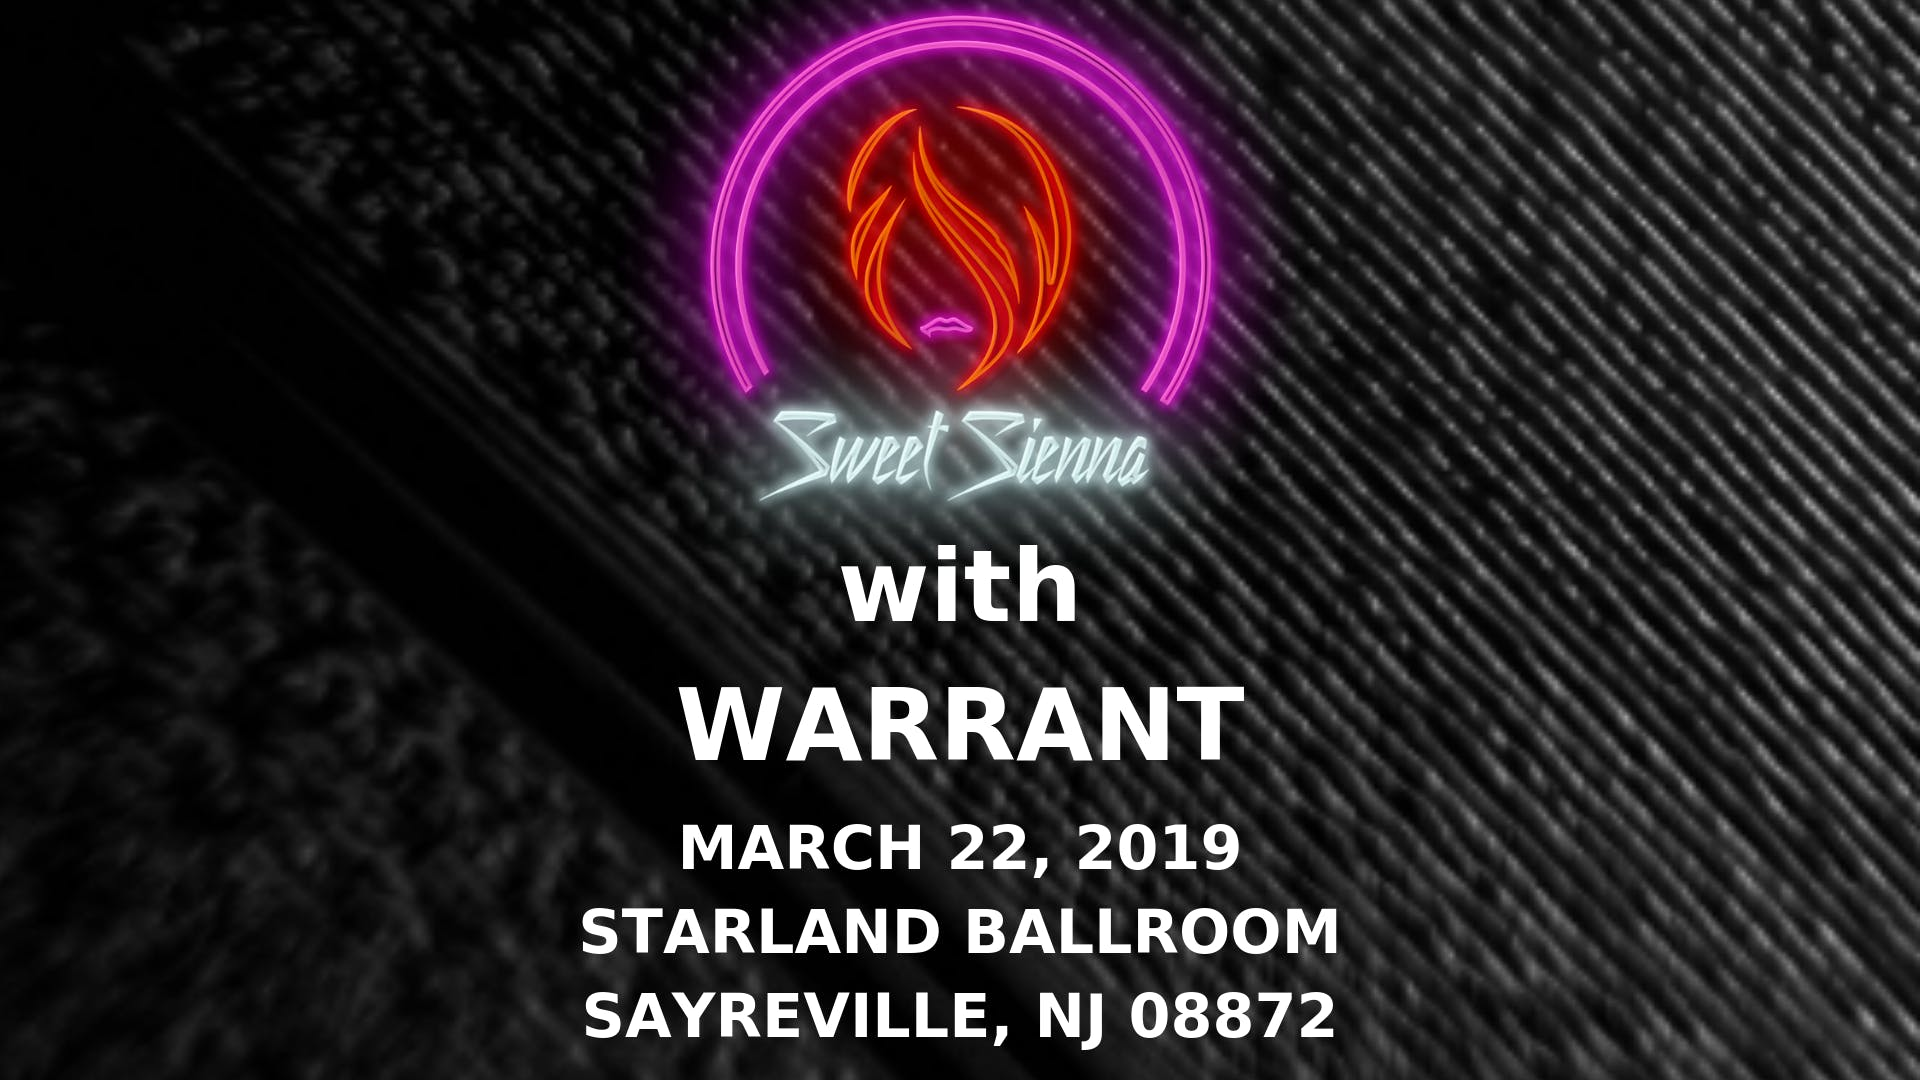 Sweet Sienna at Starland Ballroom with WARRANT